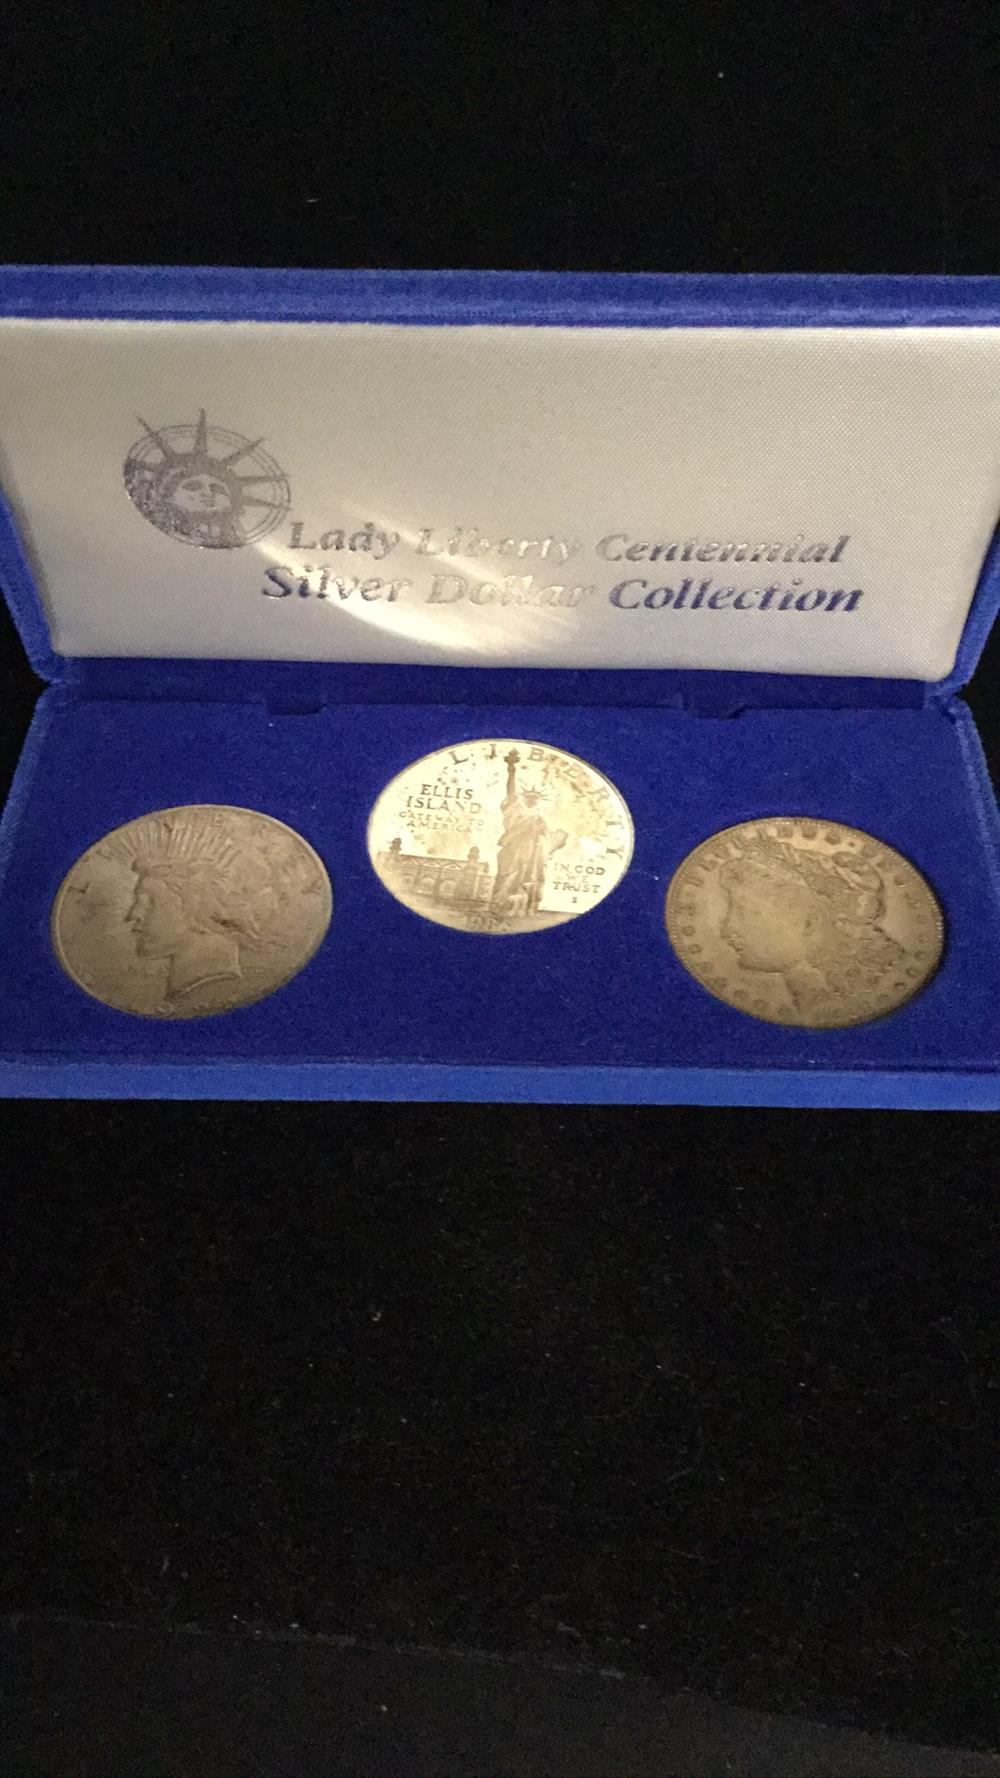 Lady liberty centennial silver dollars